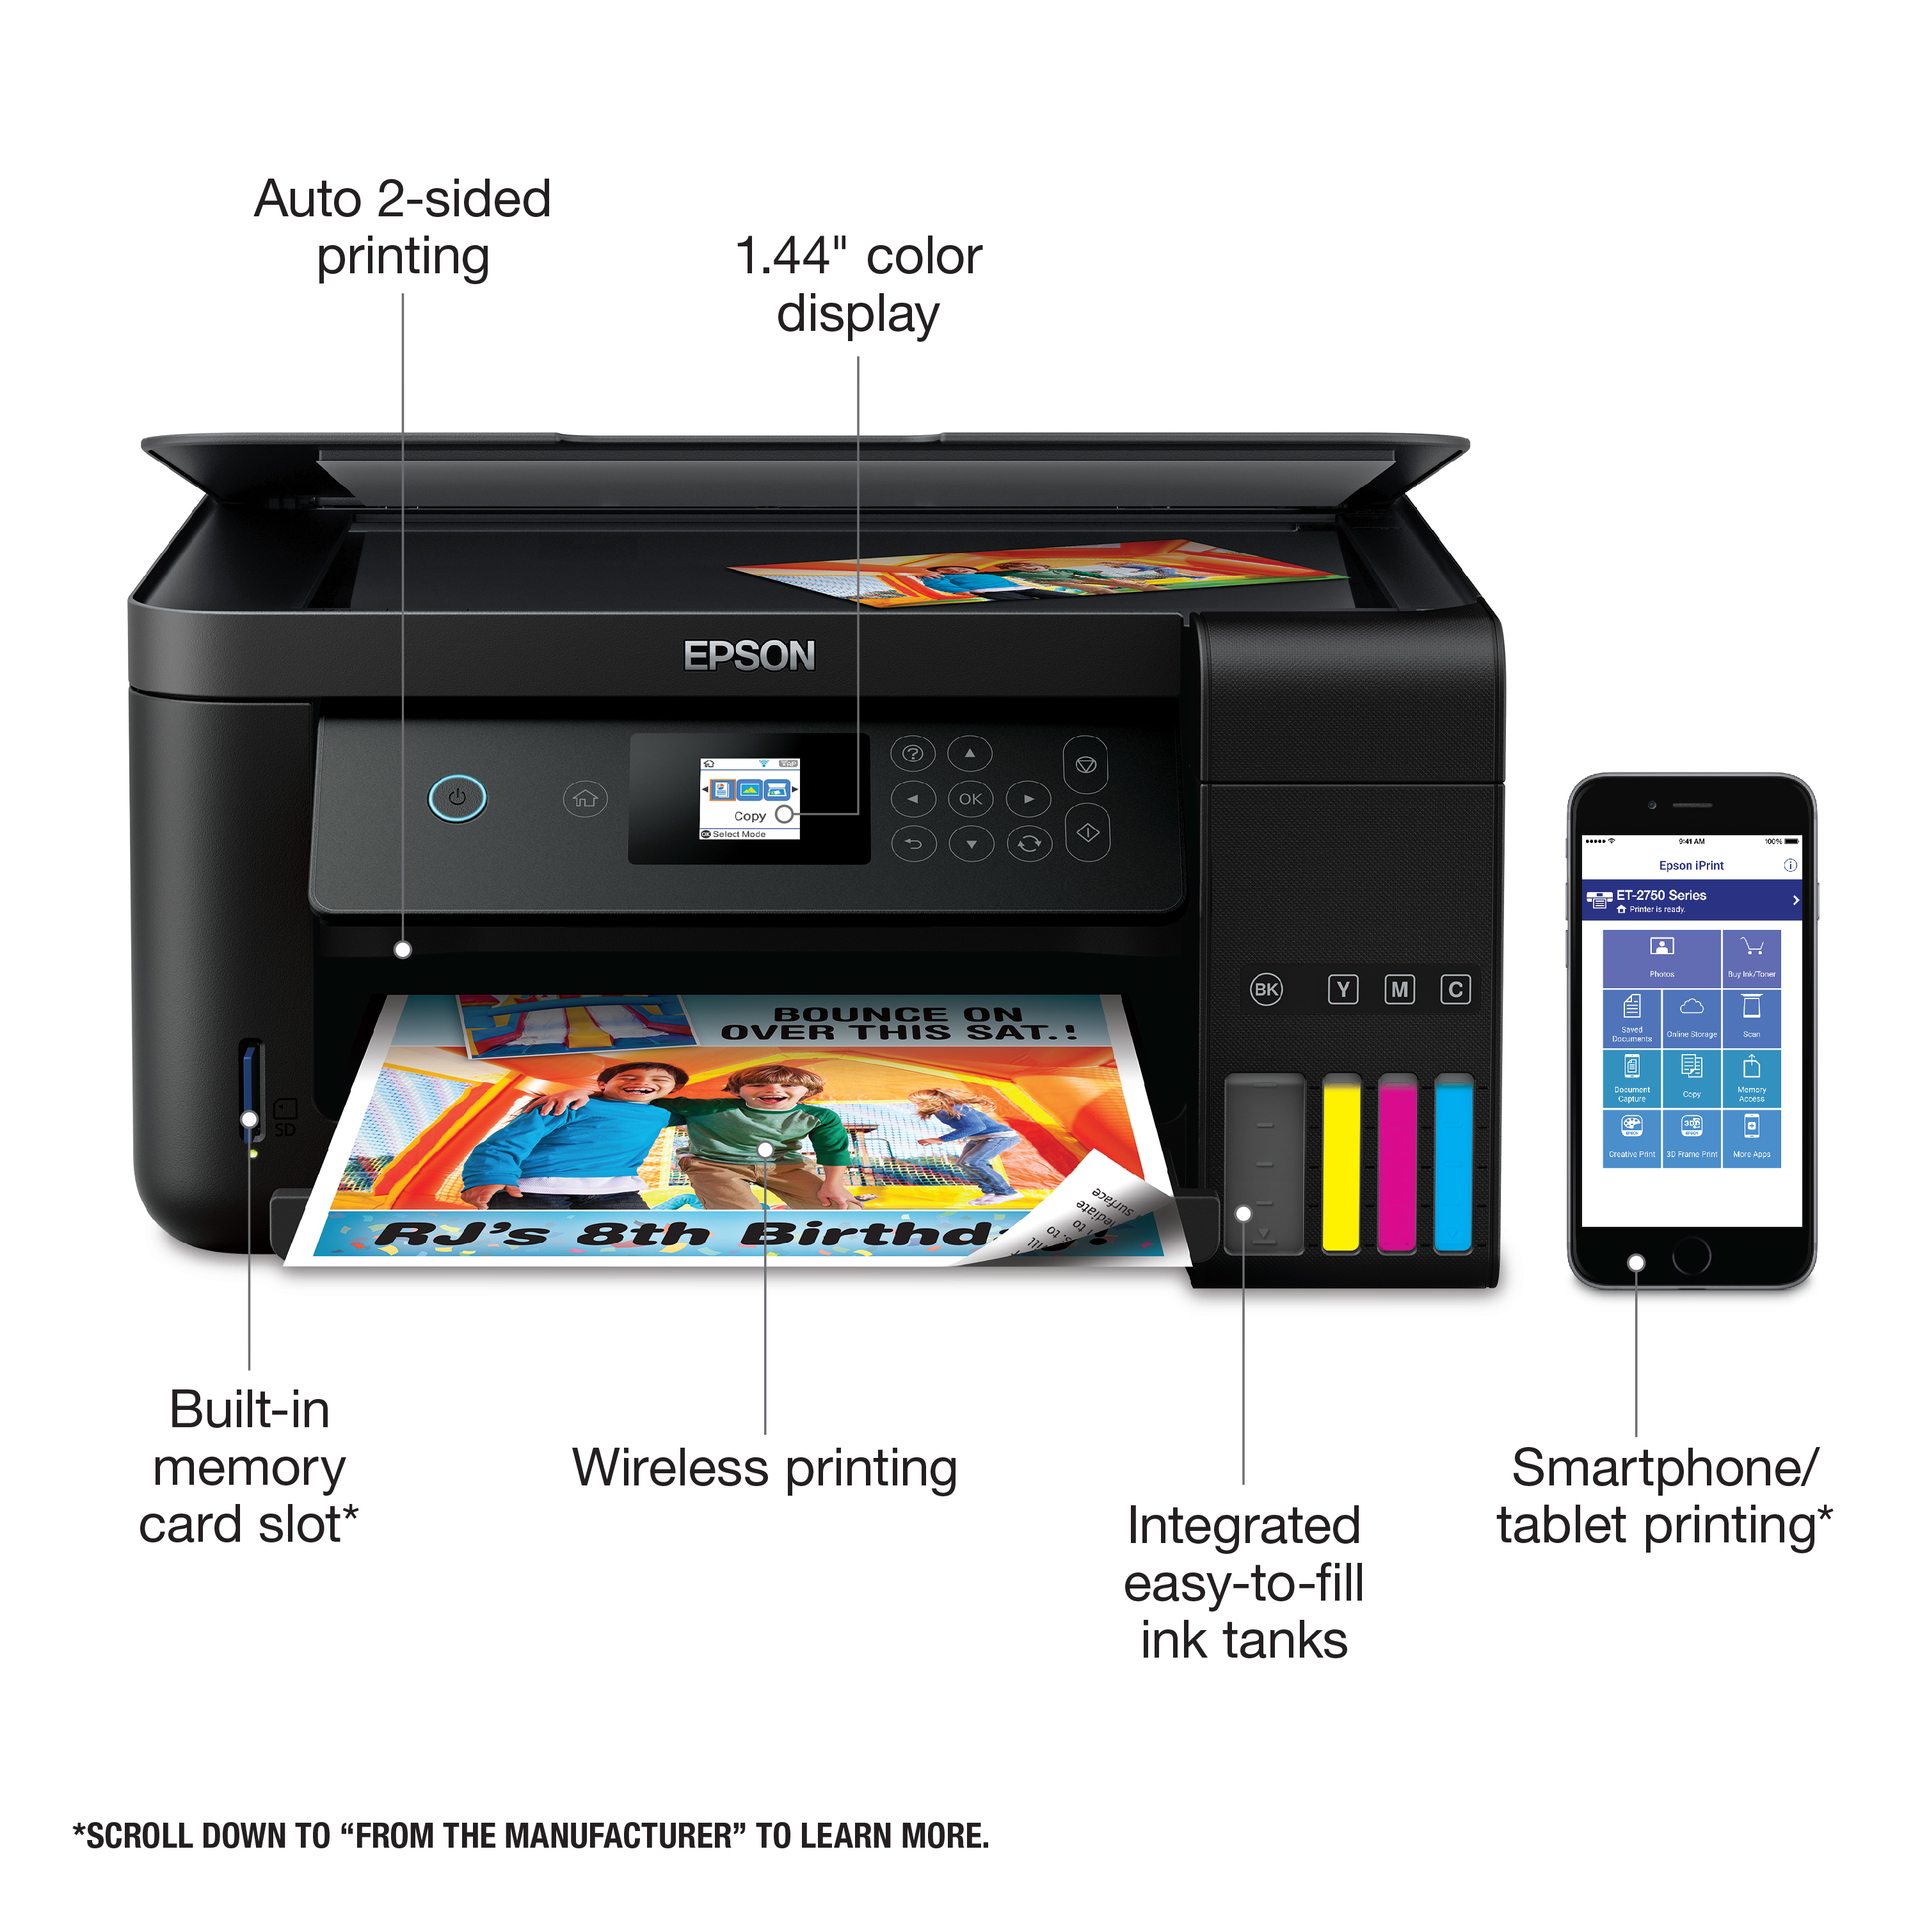 Epson Expression EcoTank ET-2750 Wireless Color All-in-One Inkjet Printer,  33ppm Mono/15ppm Color, 5760x1440 dpi Print Resolution, 100 Sheet Standard